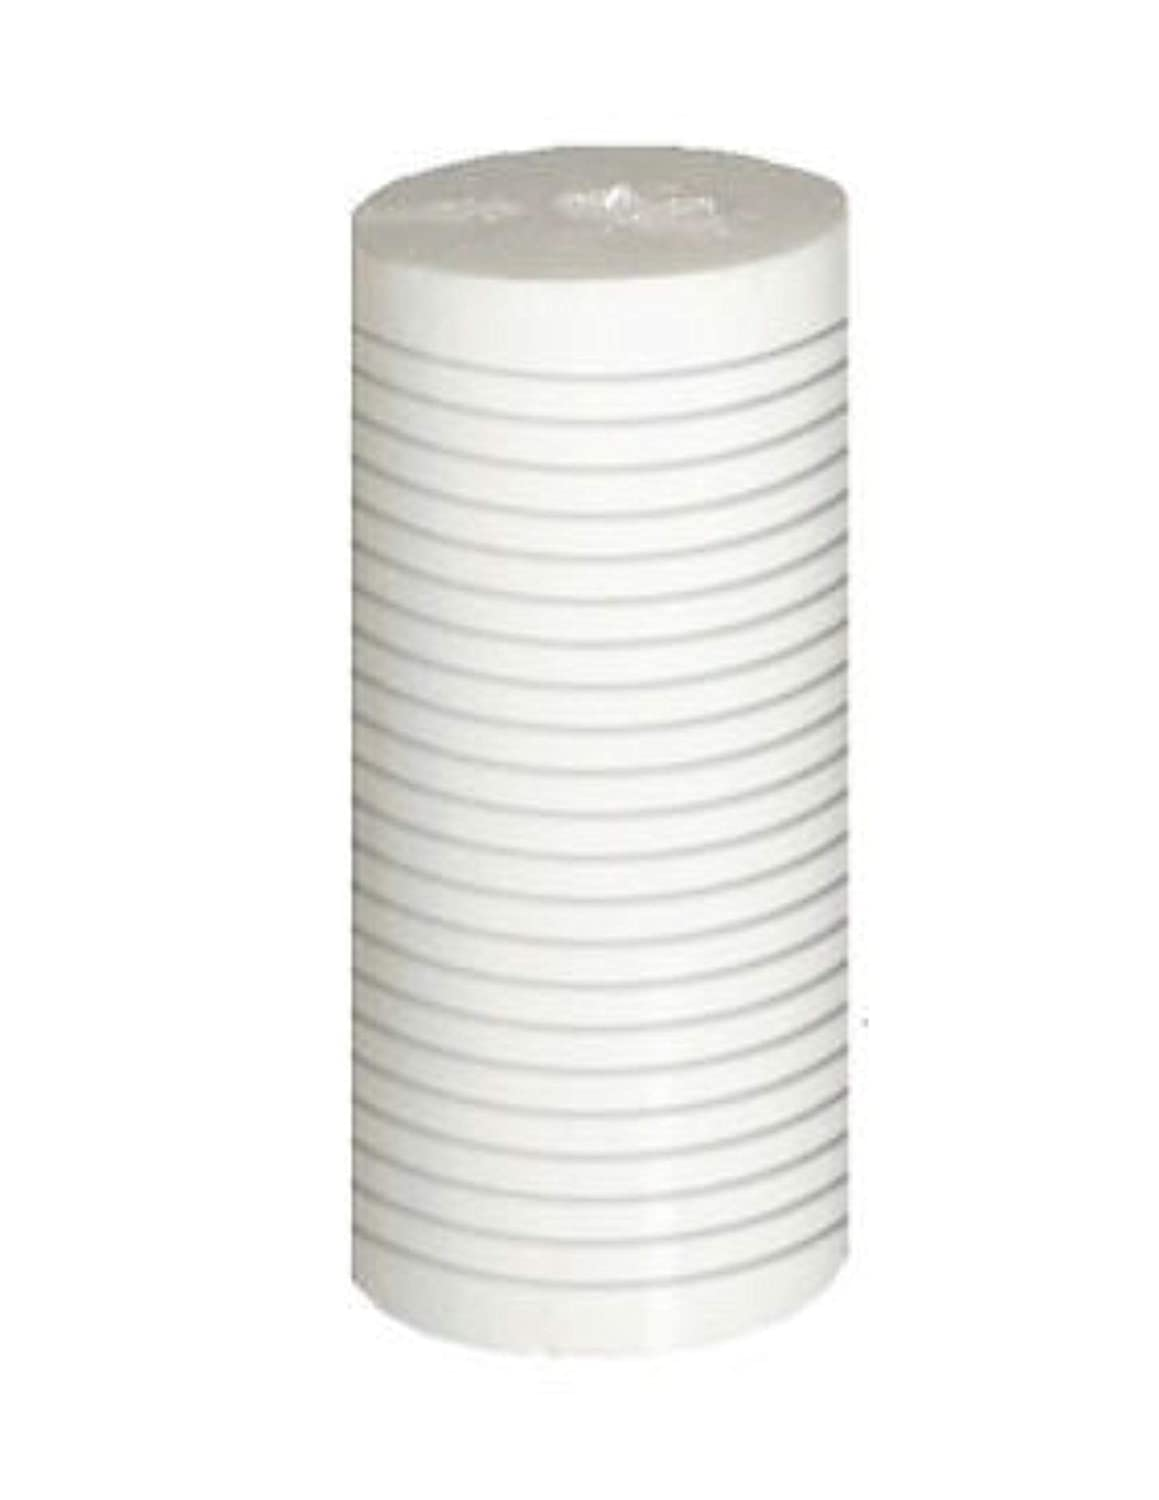 CMB-510-HF Compatible Polypropylene Whole House Filter Fits The IHS12-D4 UV System